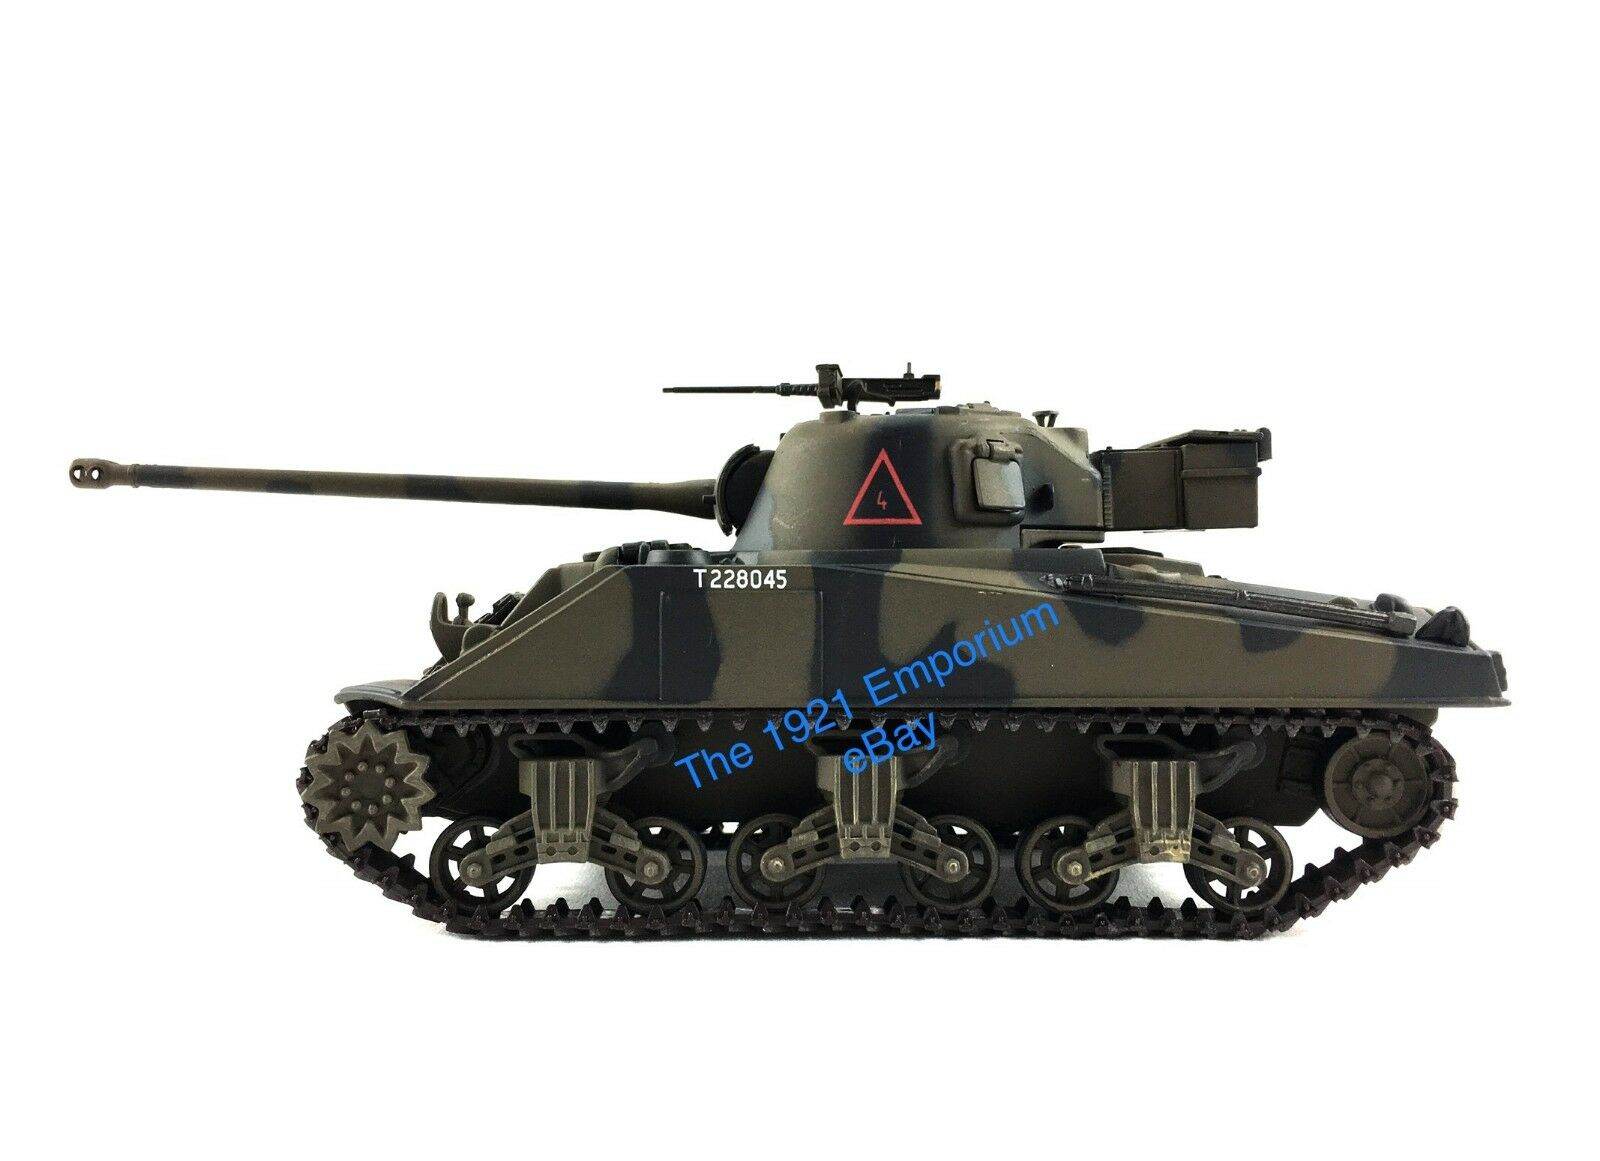 1 32 Scale 21st Century Toys Ultimate Soldier WWII Sherman Firefly VC Tank